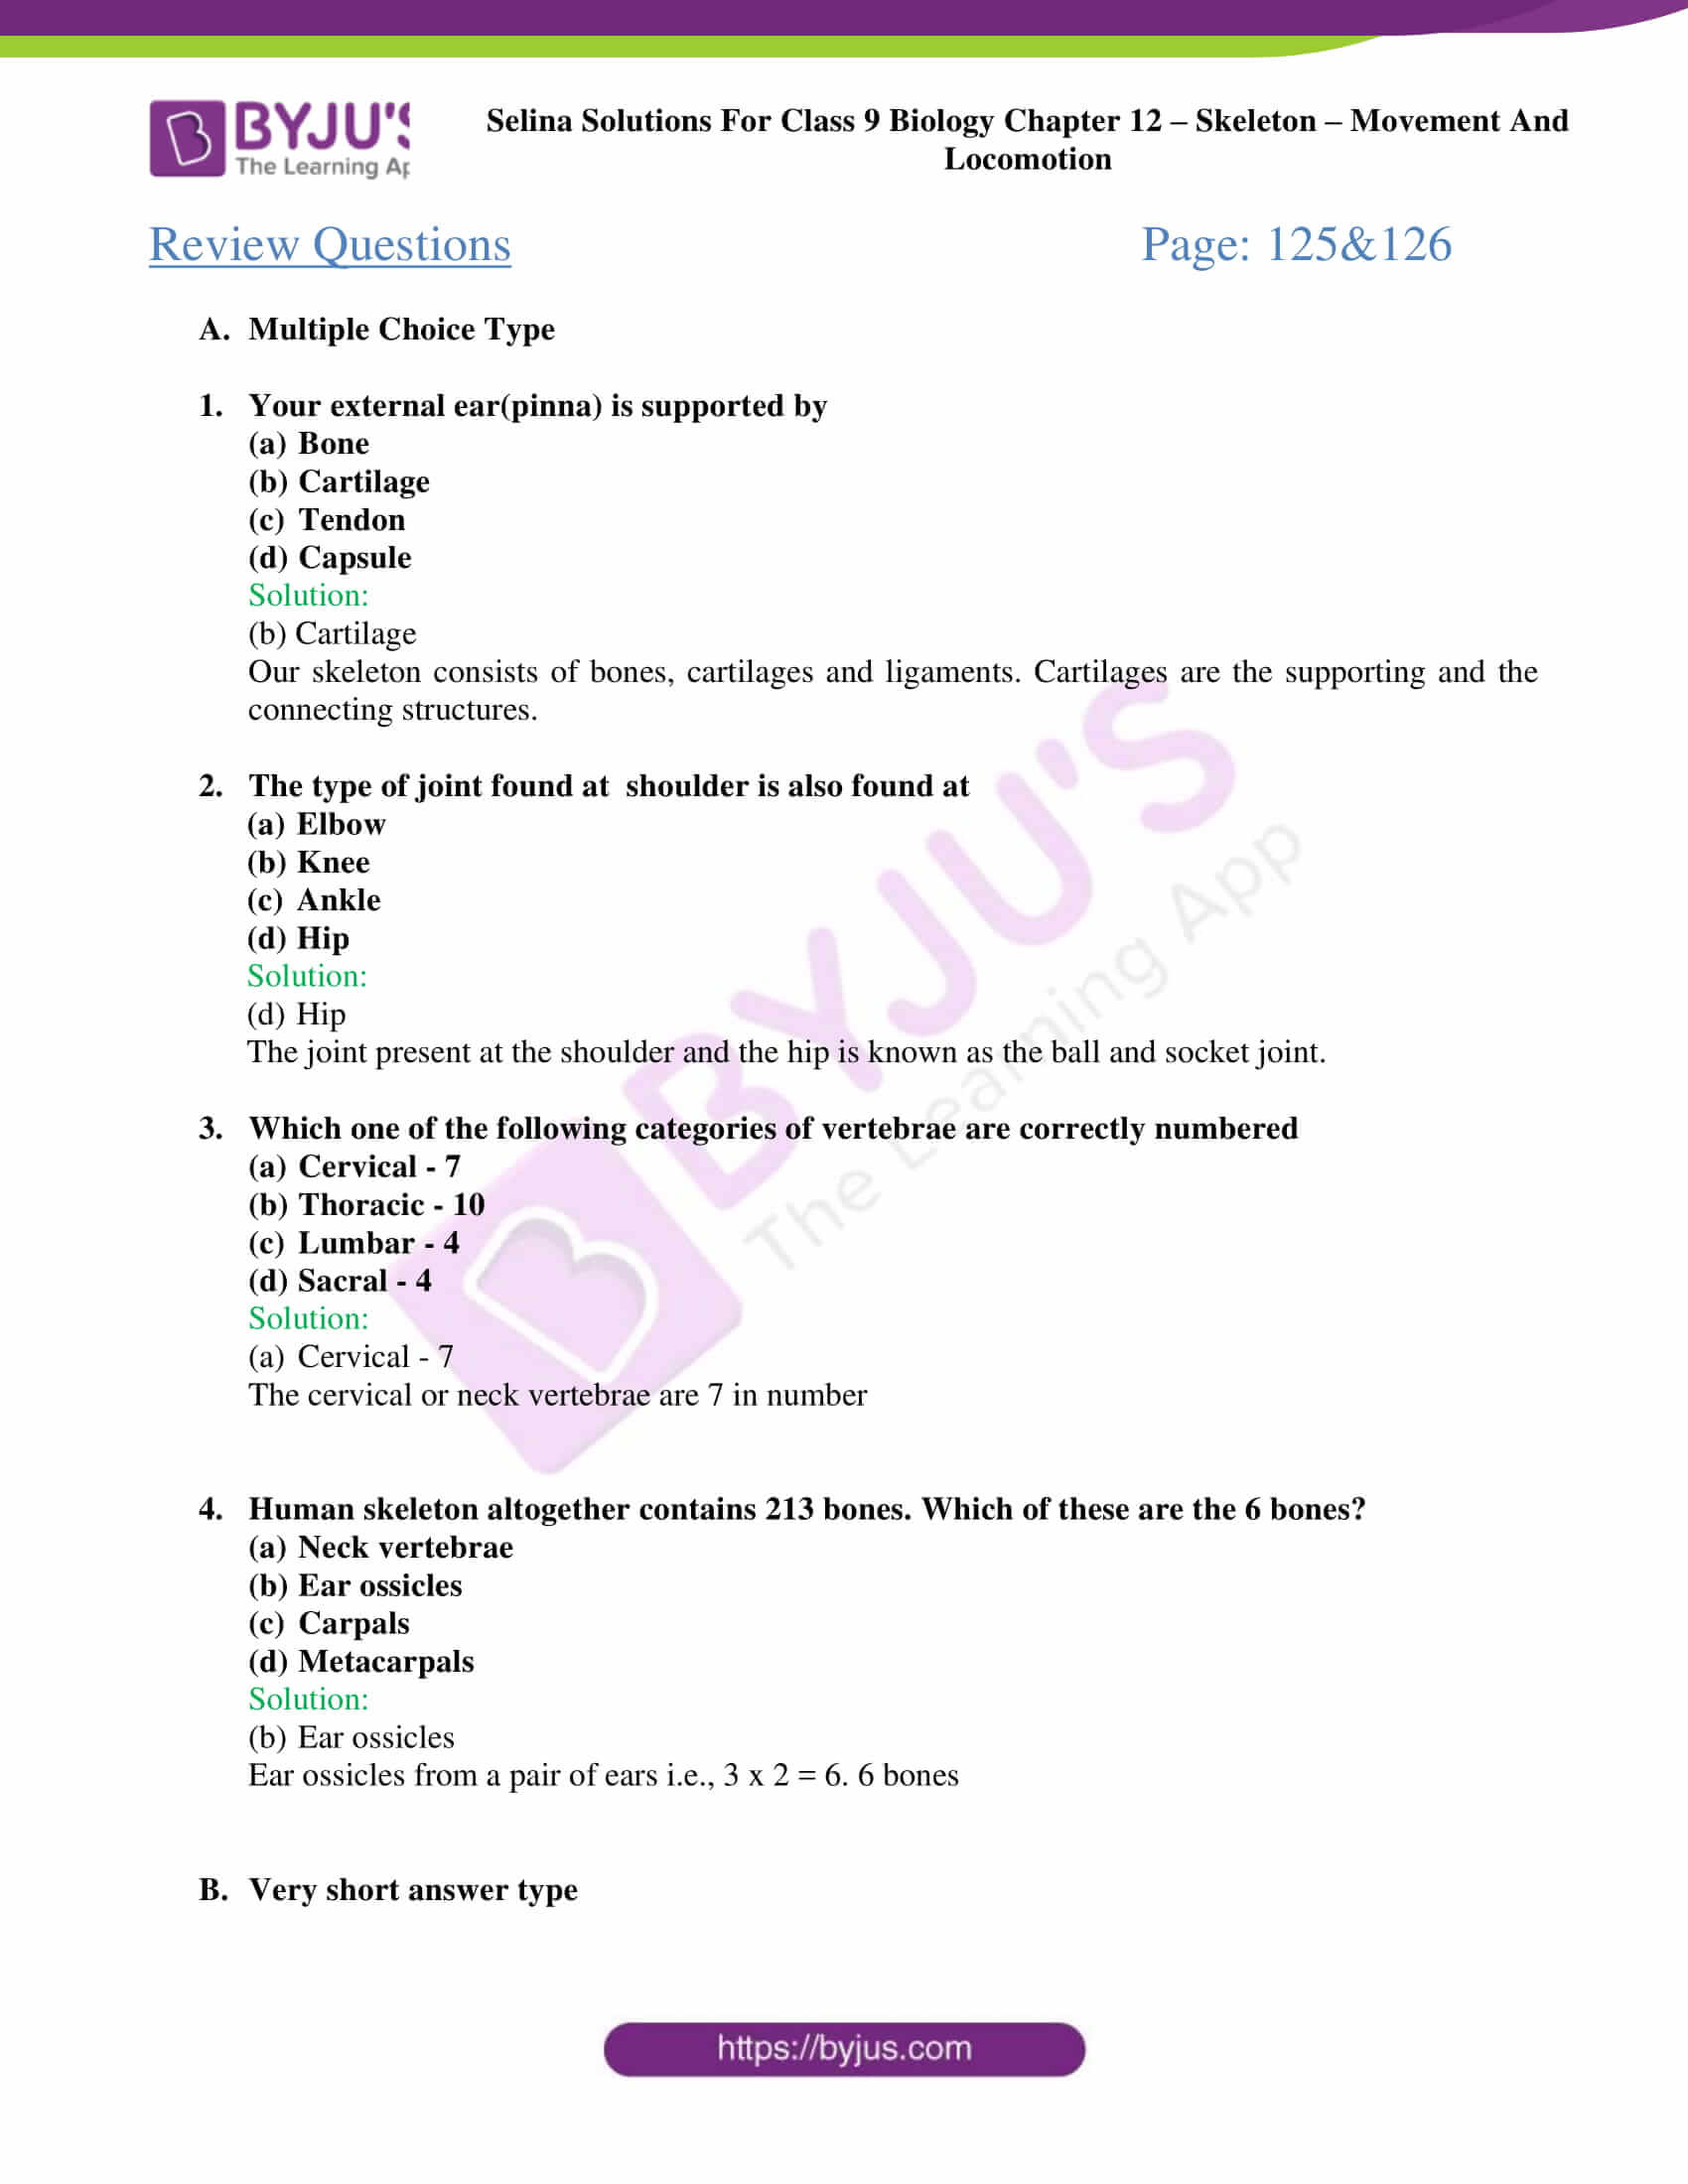 selina Solutions For Class 9 Biology Chapter 12 part 4